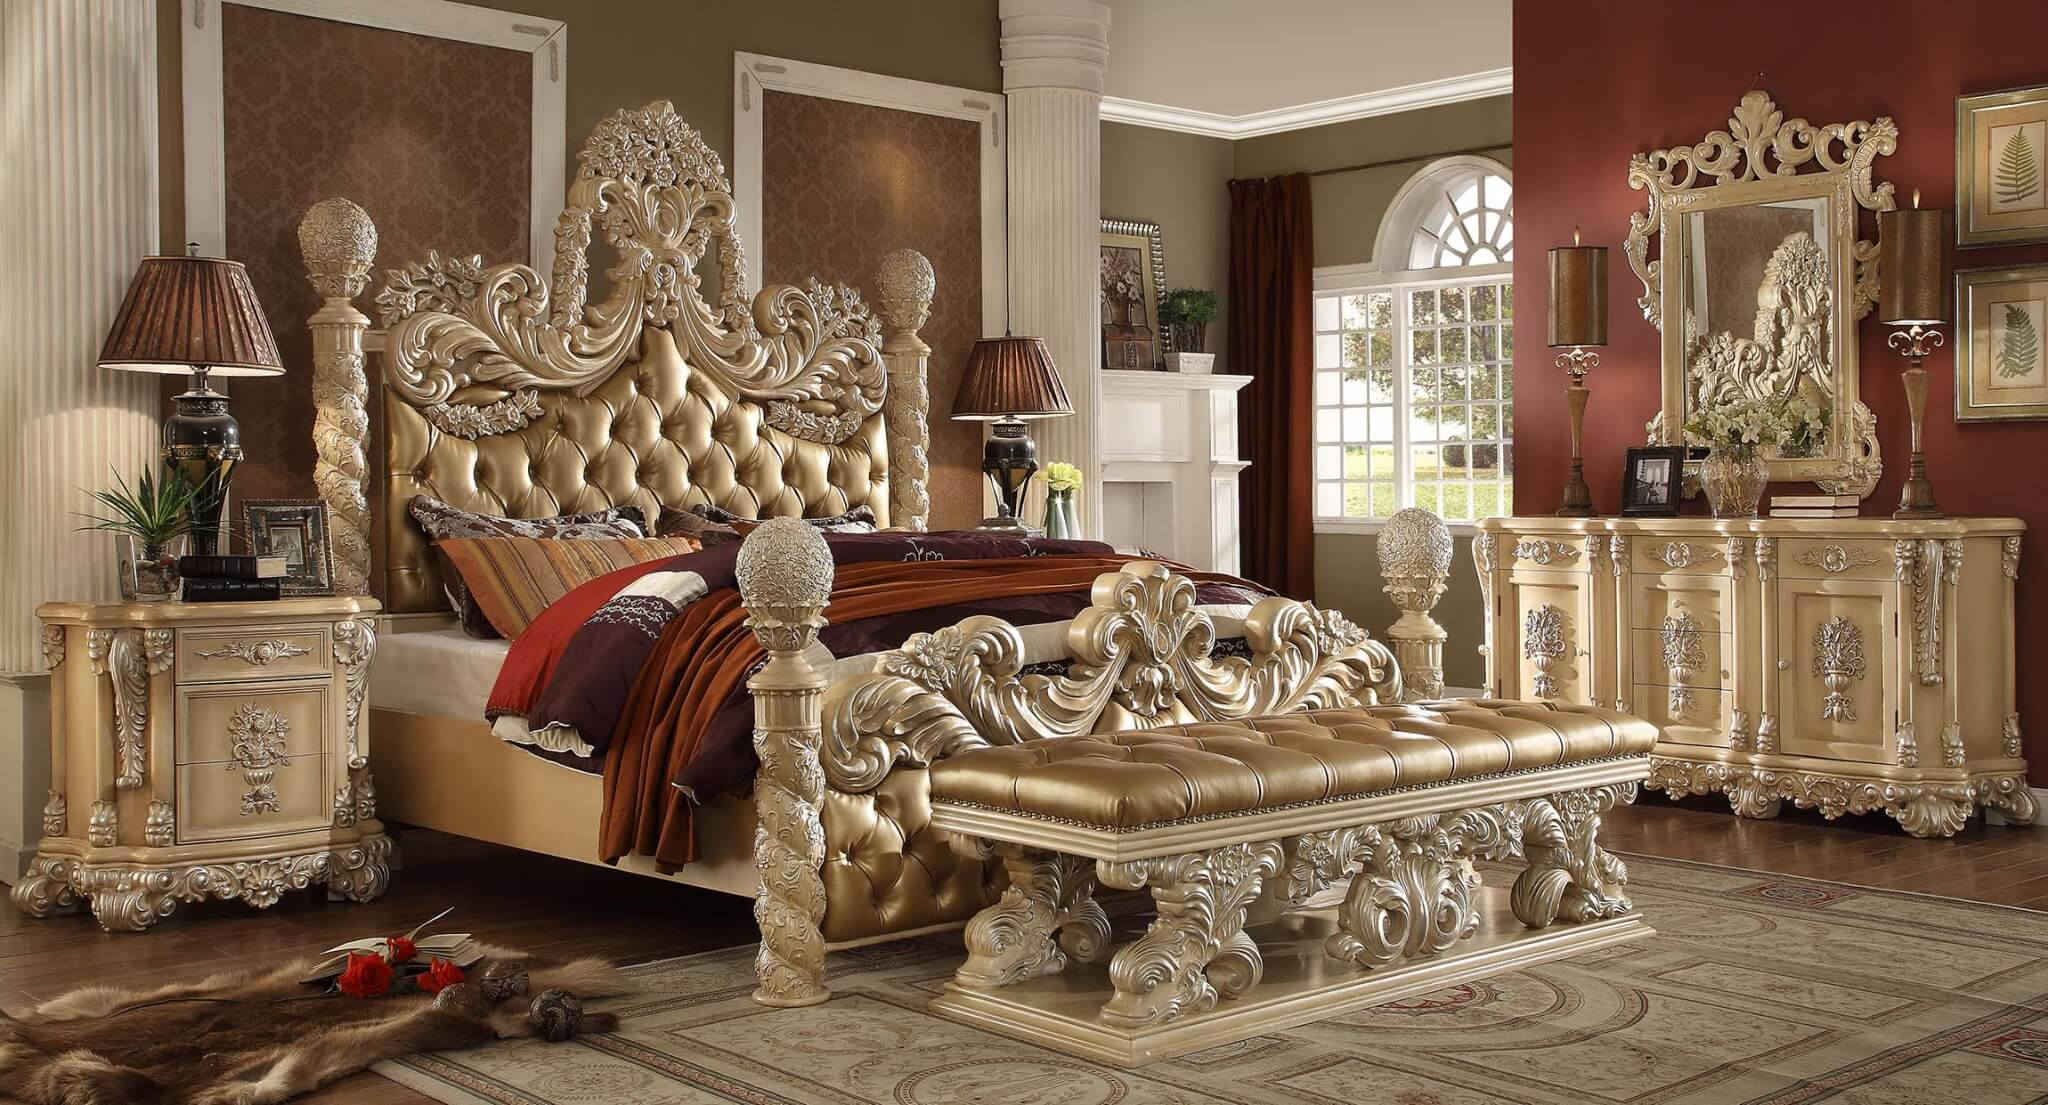 Bedroom Set HD7266 - Antique ReCreations